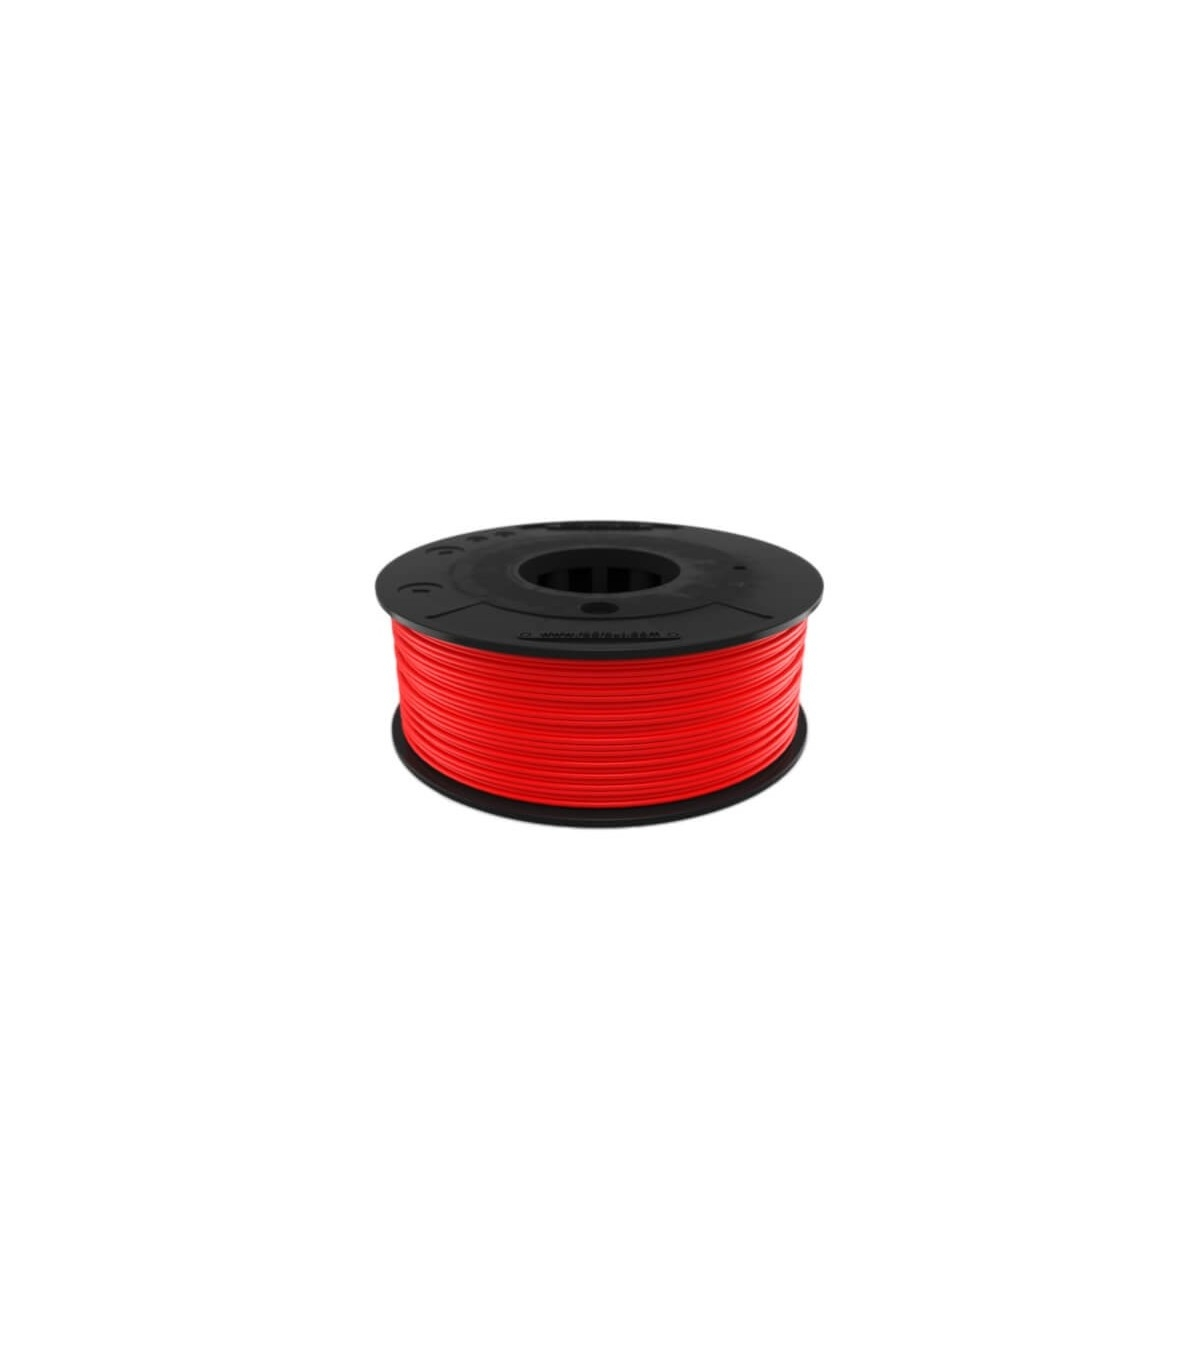 FilaFlex Red 82A TPE Filament 1.75 mm 250g